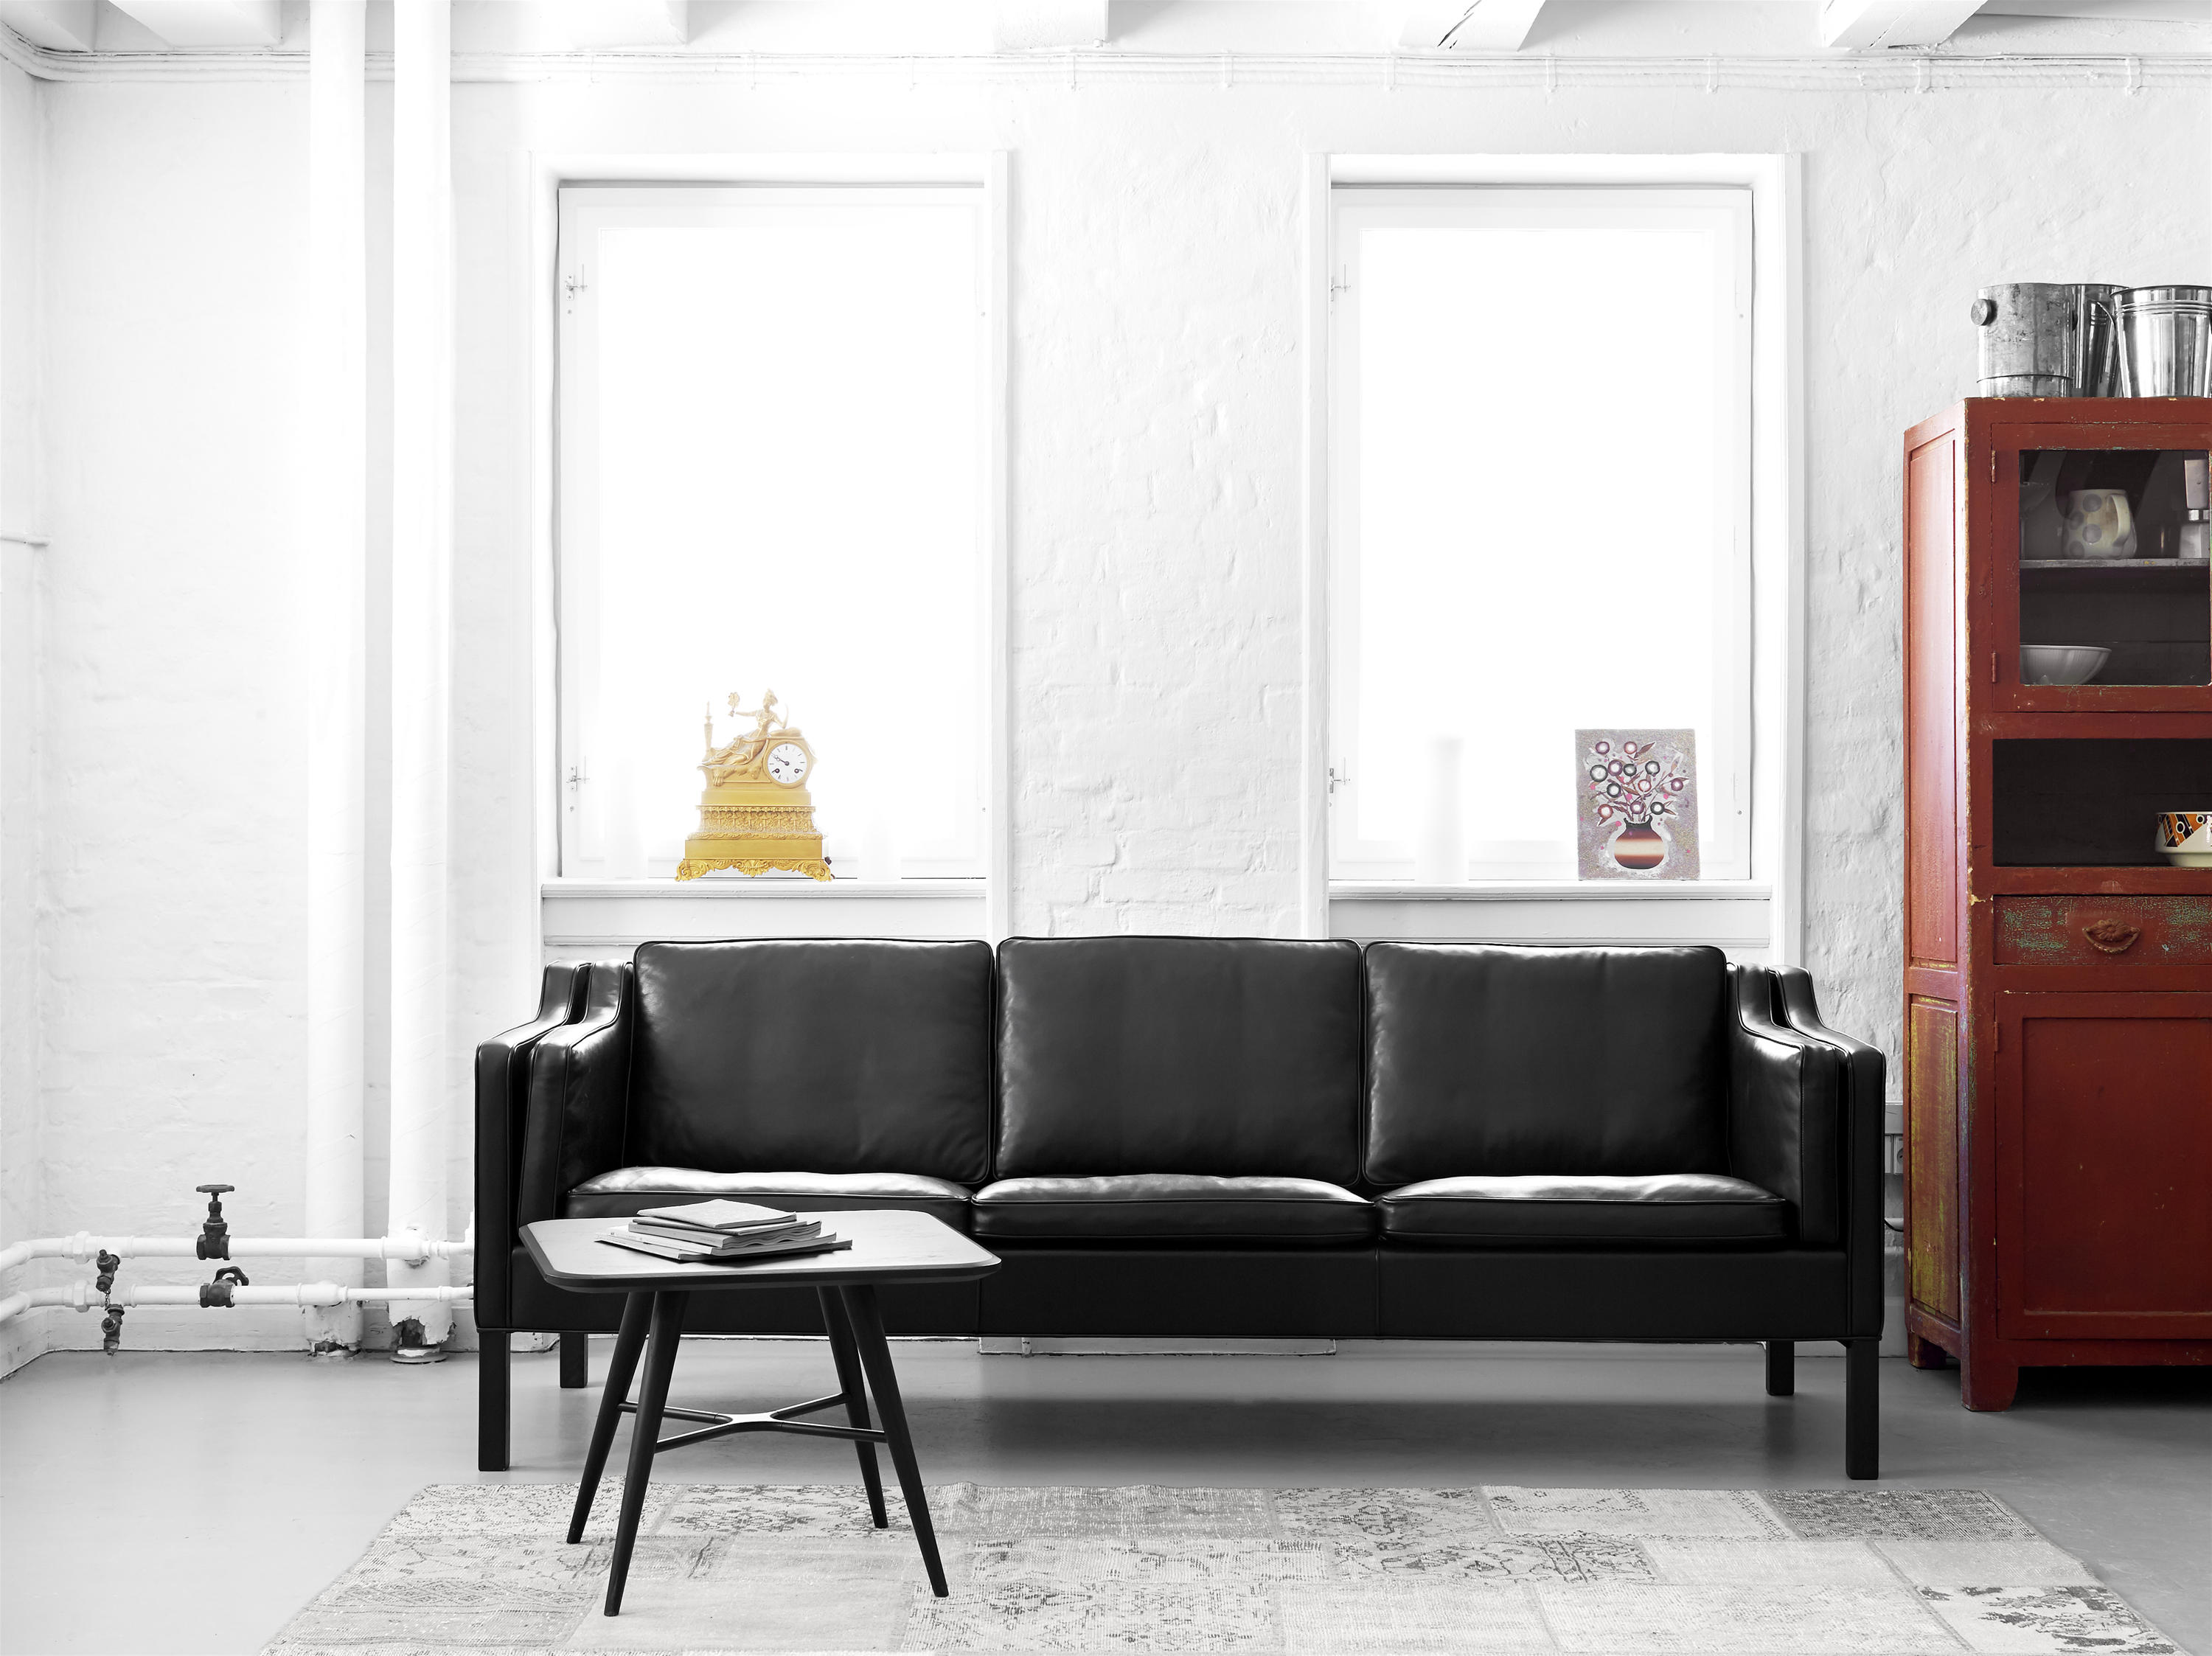 2212 Lounge sofas from Fredericia Furniture